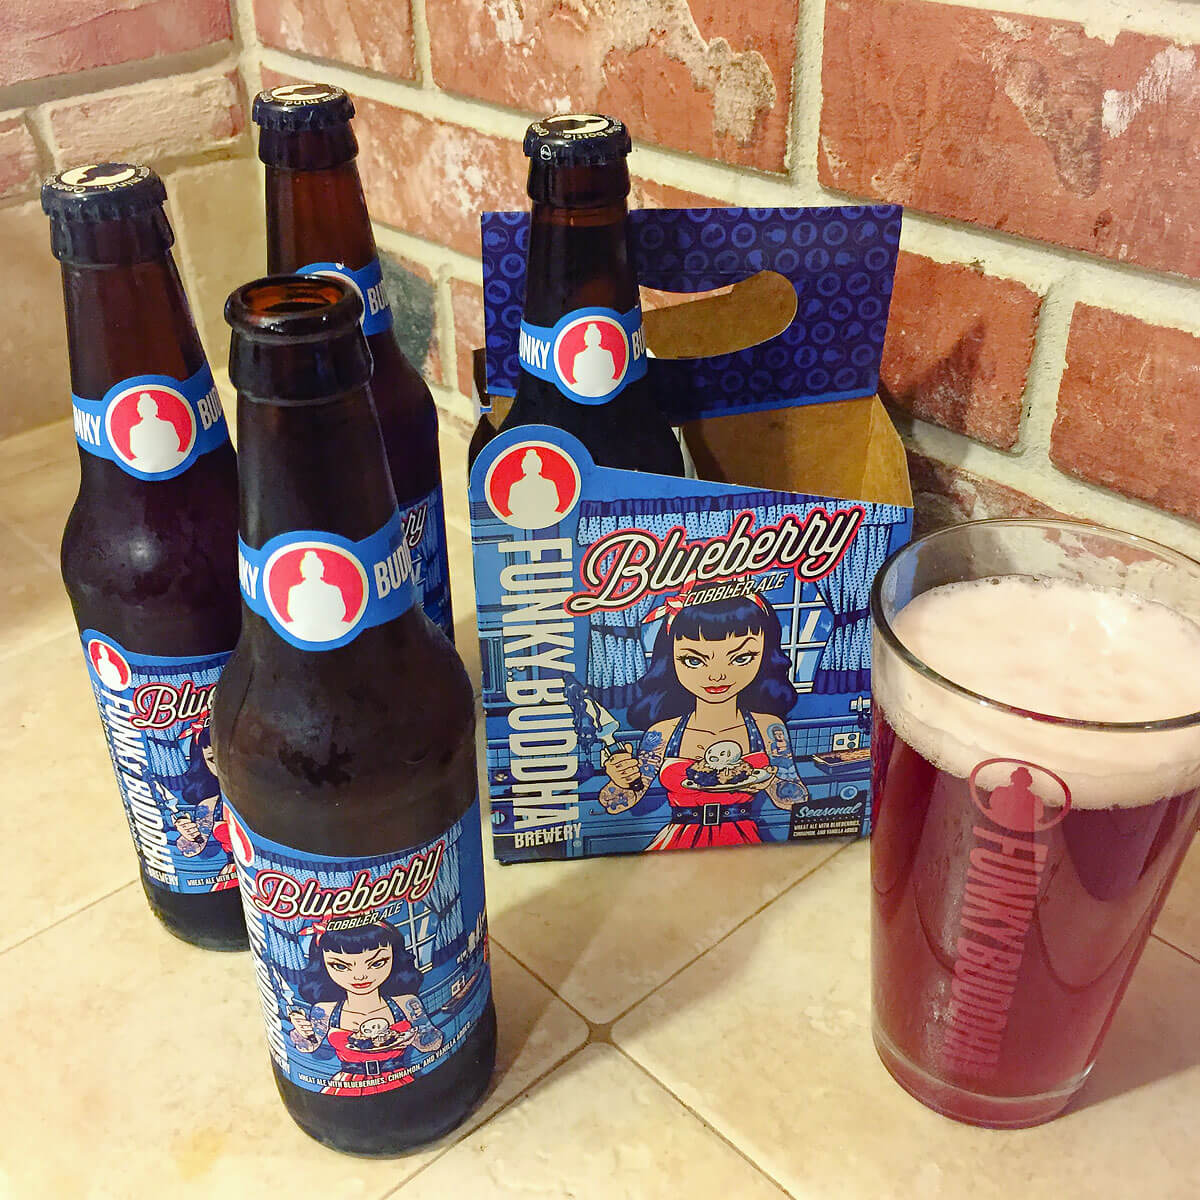 Blueberry Cobbler Ale, an American Wheat Ale by Funky Buddha Brewery